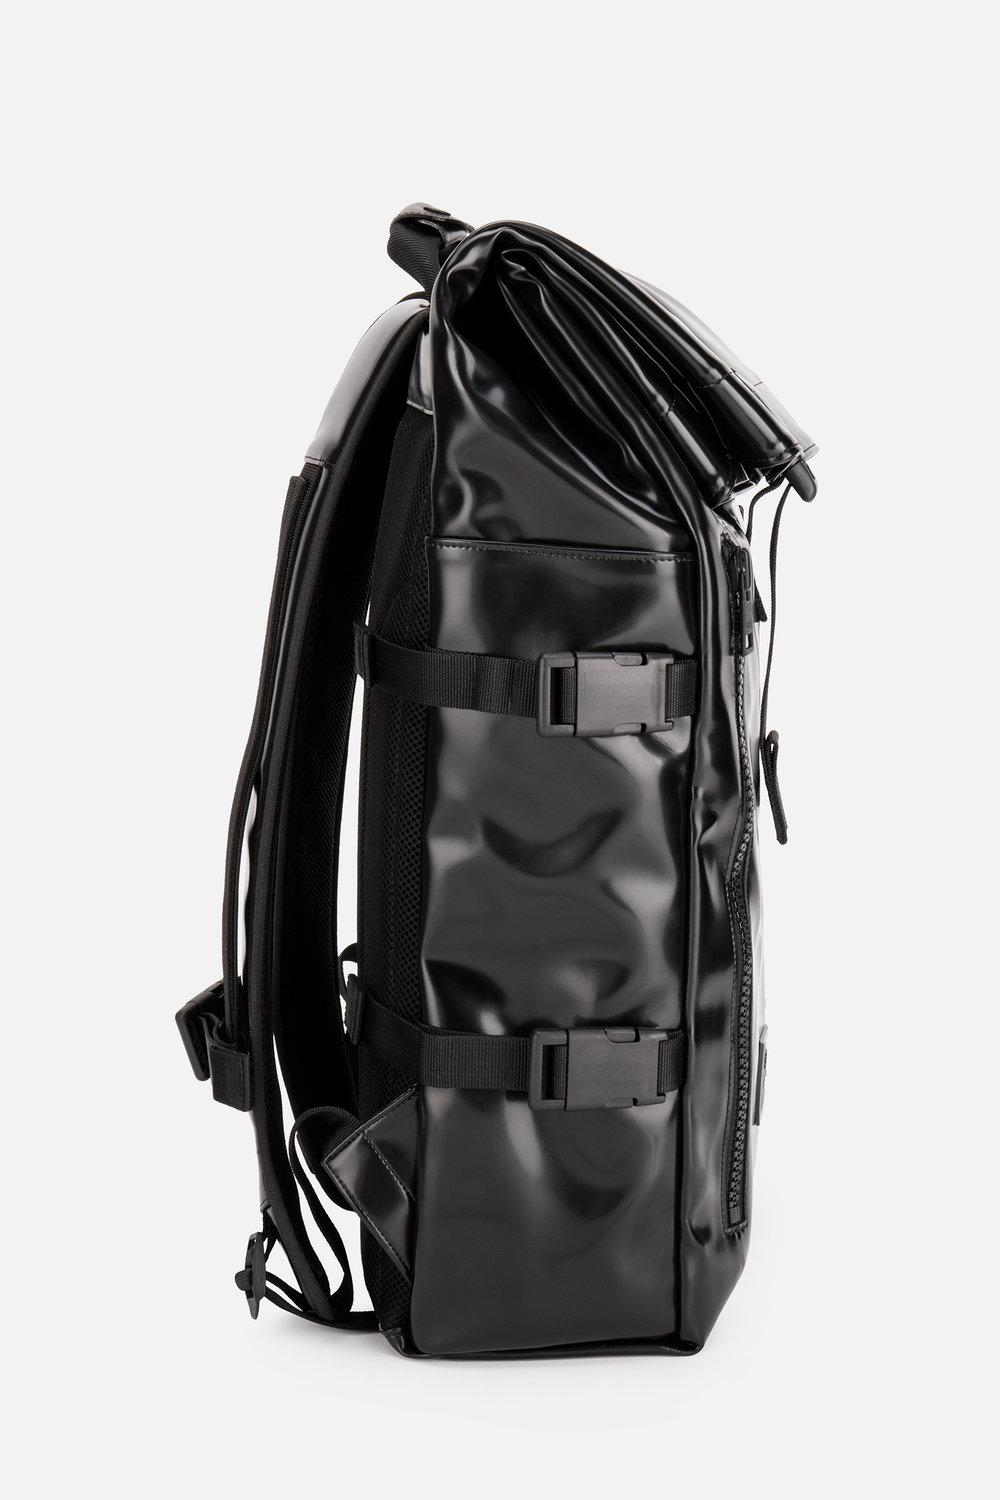 Ami Roll Top Backpack in Black for Men - Lyst 16382da949